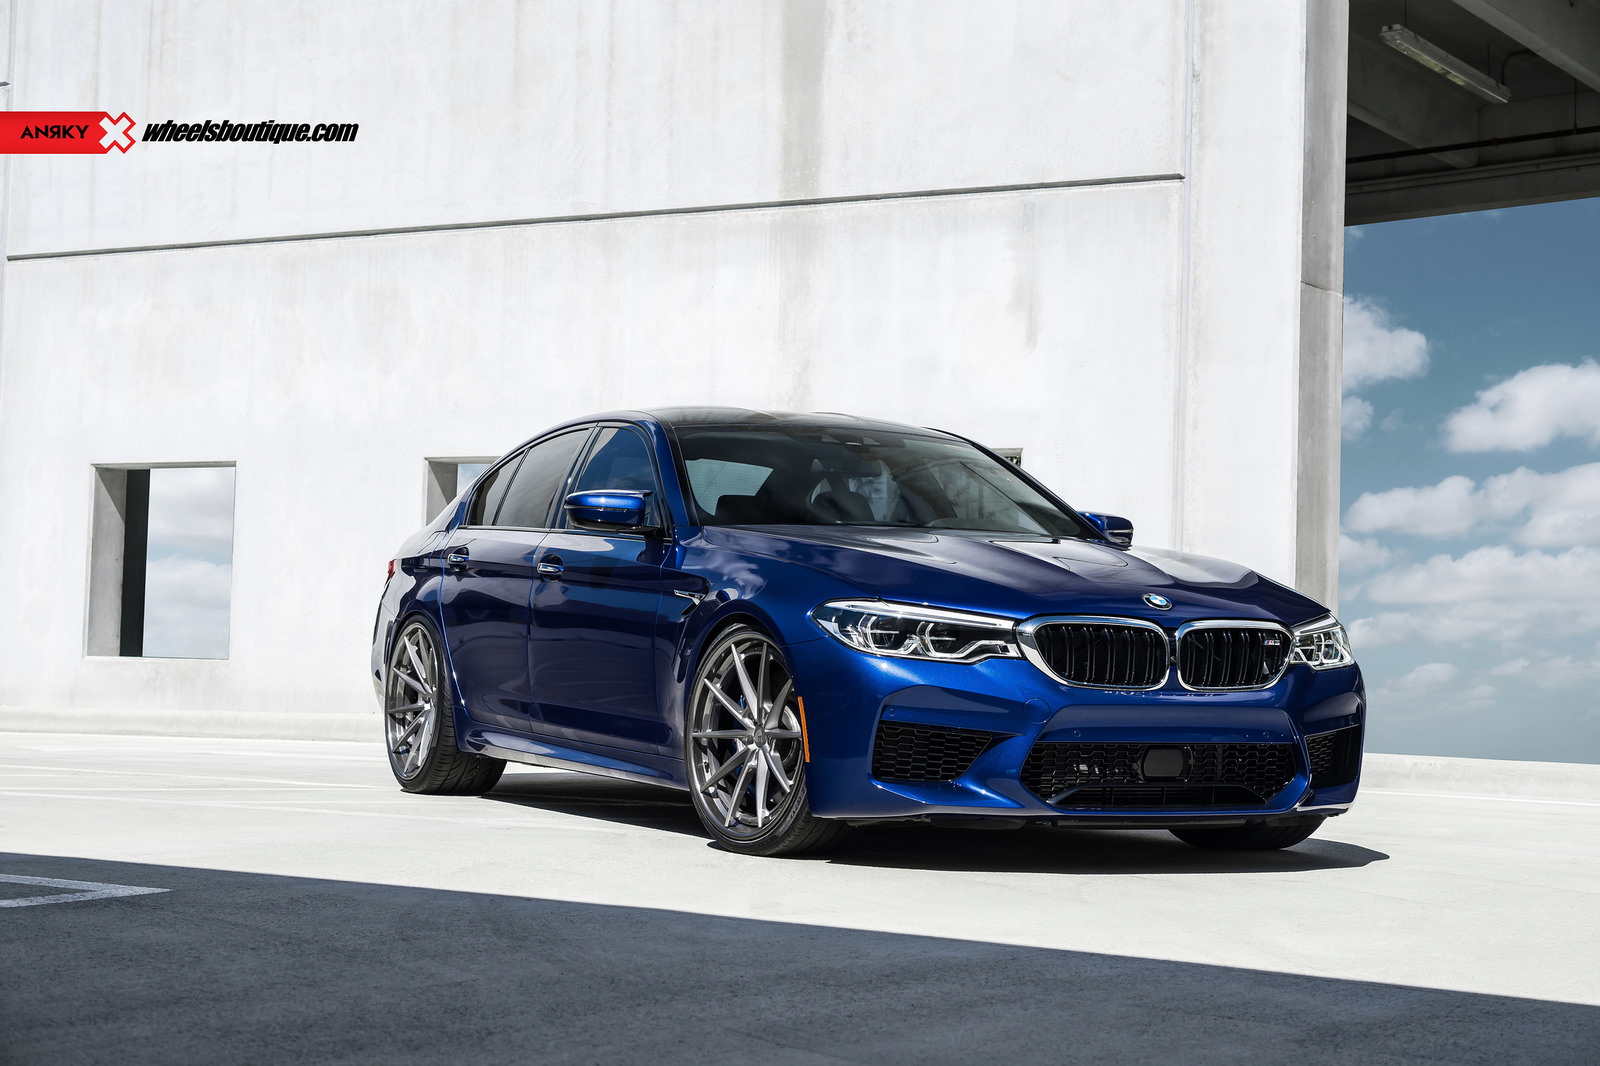 teamwb 39 s bmw f90 m5 lowered with 22 anrky 39 s must see. Black Bedroom Furniture Sets. Home Design Ideas